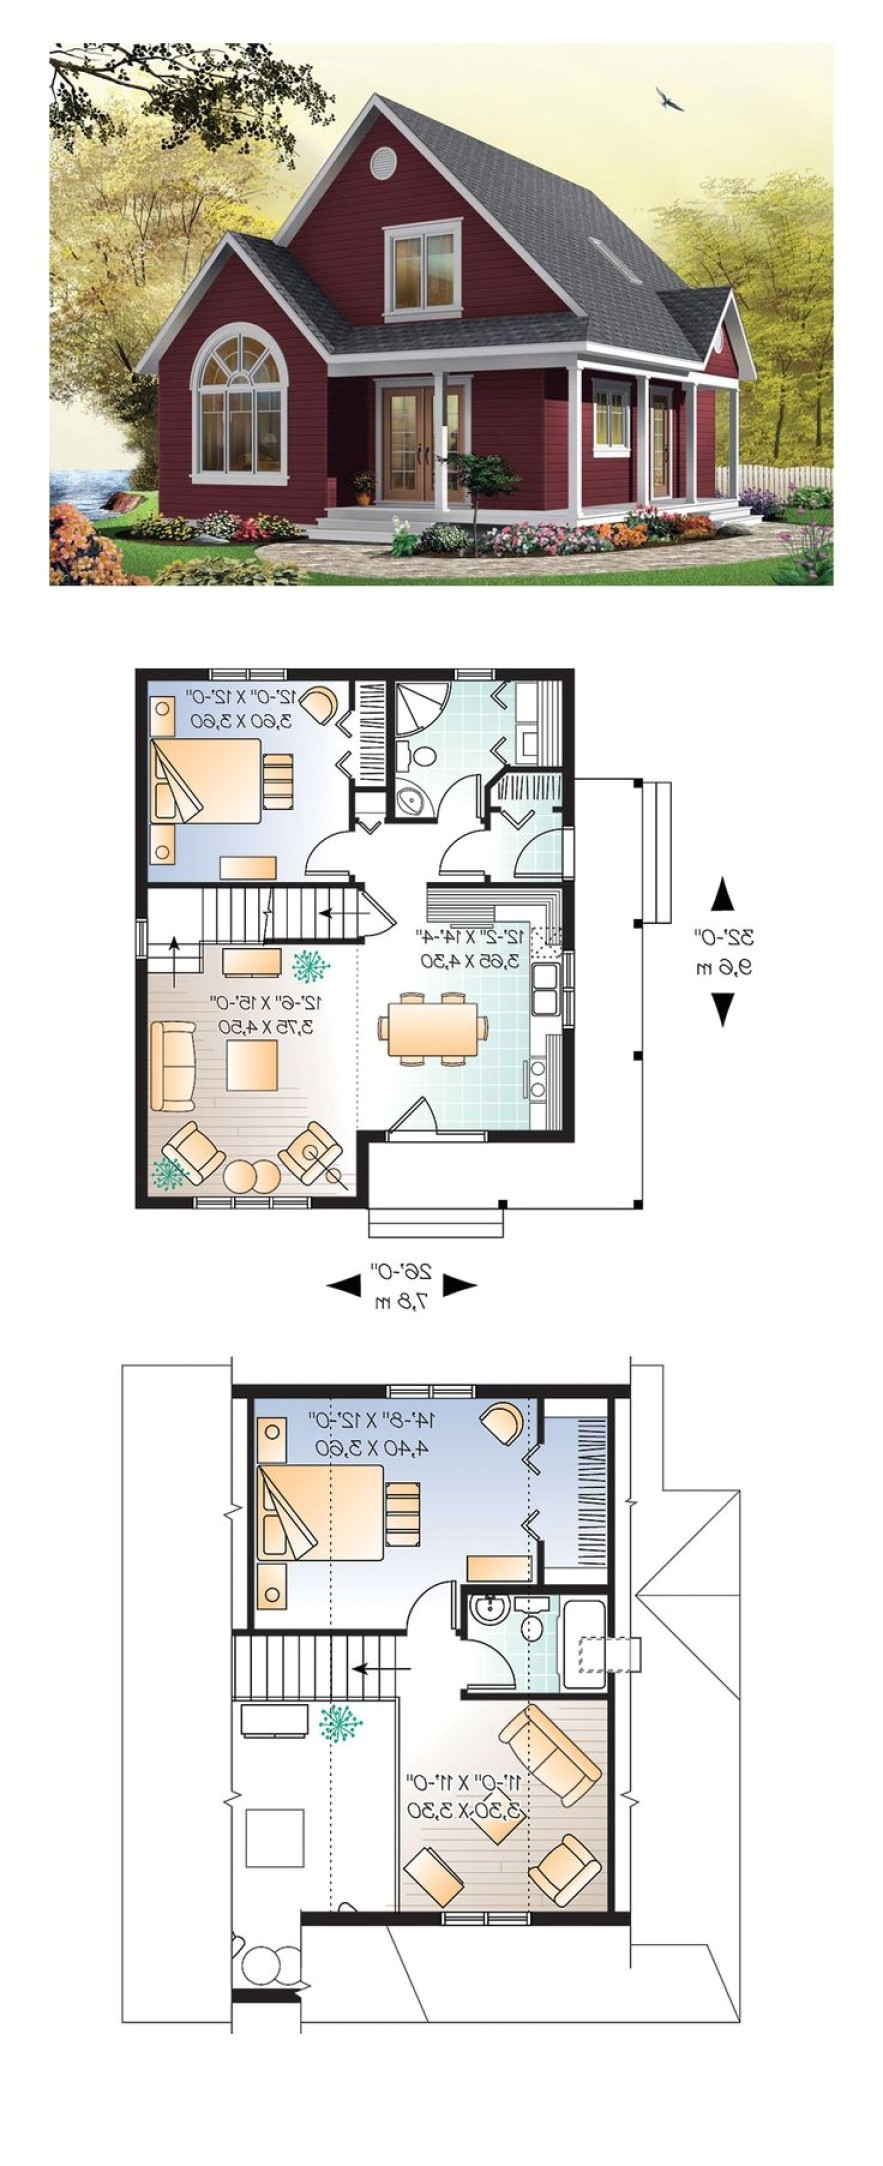 beautiful smaller smarter home plans 0 small mesmerizing